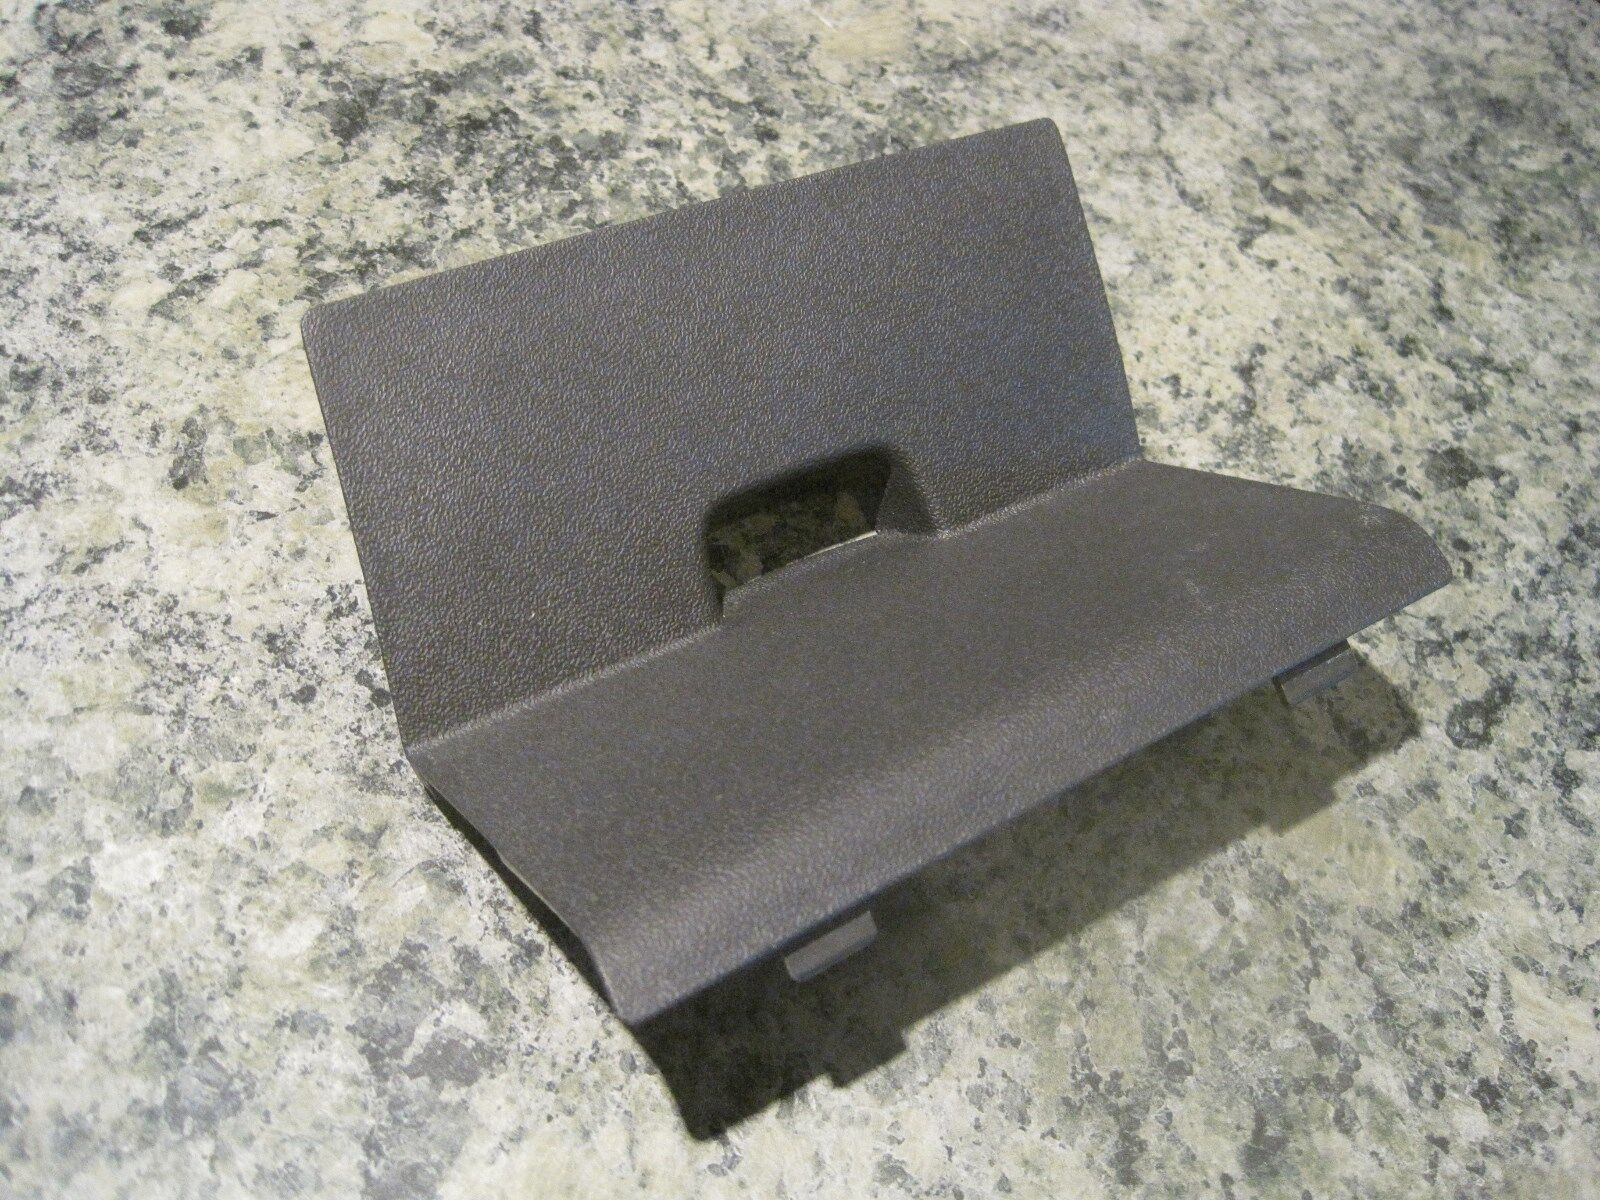 Used Scion Xa Dash Parts For Sale 2006 Fuse Box Cover Panel Door Handle Left Driver Side Black Oem